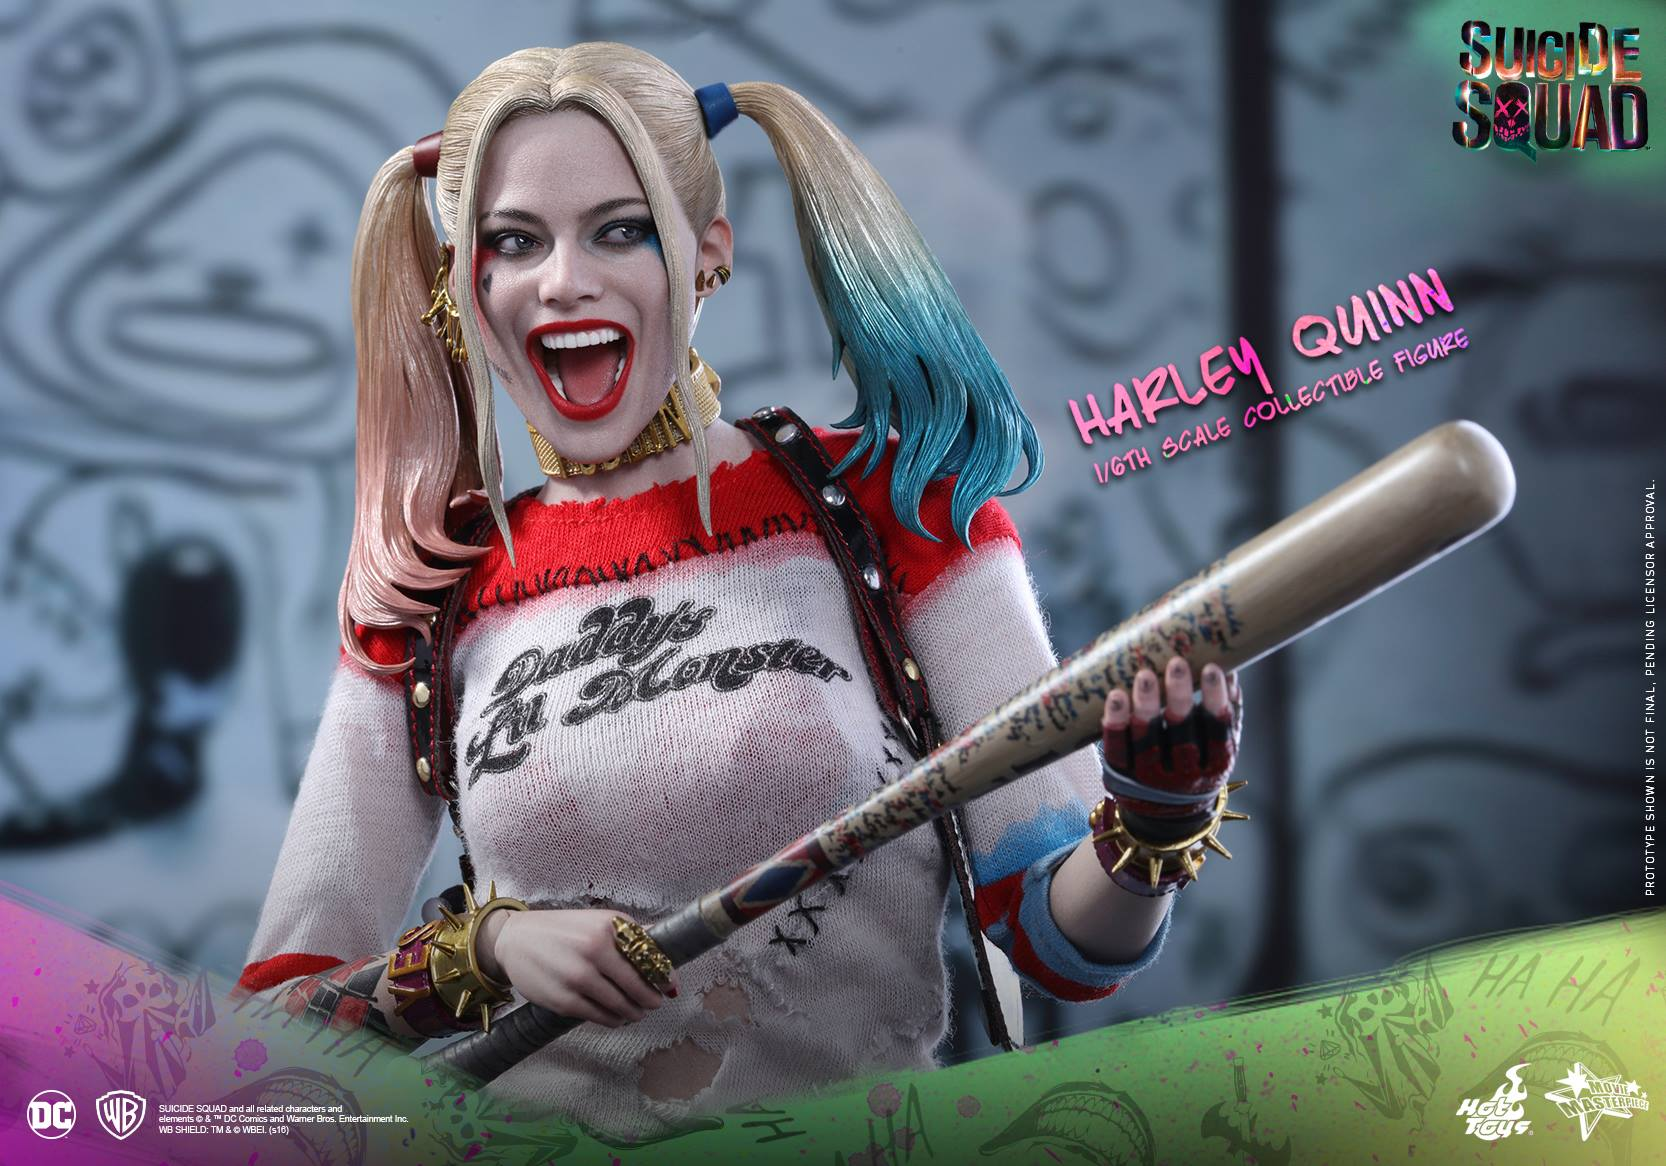 Suicide Squad Hot Toys - Harley Quinn